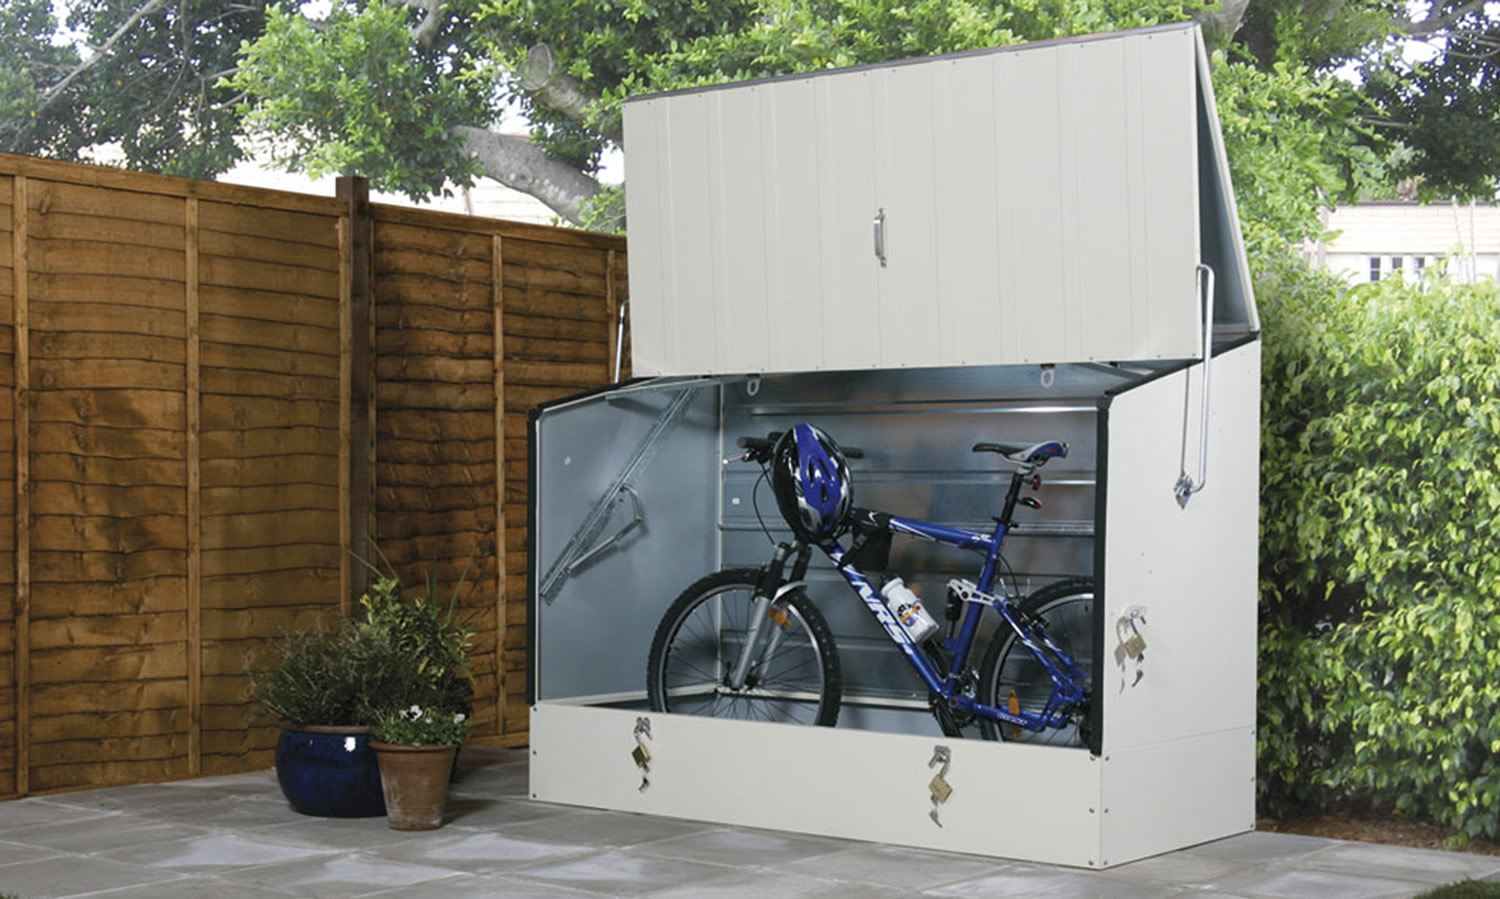 bike sheds and metal garden storage units from trimetals uk. Black Bedroom Furniture Sets. Home Design Ideas